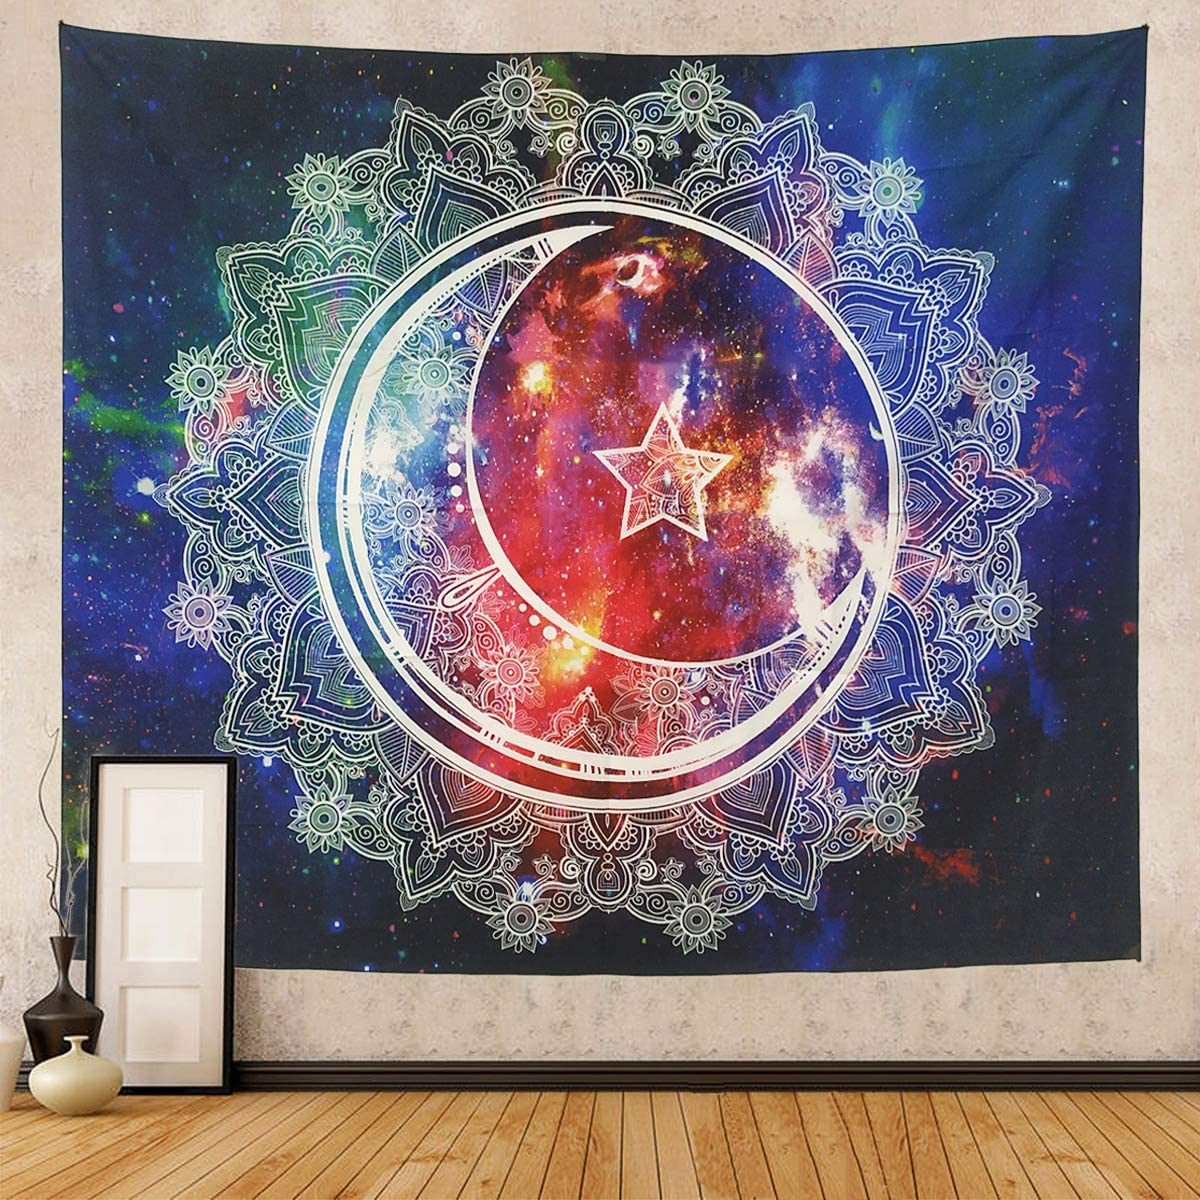 Tapestry Wall Hanging,Galaxy Psychedelic Tapestries, Mandala Bohemian Hippie Wall Tapestry for Bedroom Dorm Decor(Mandala-59.1